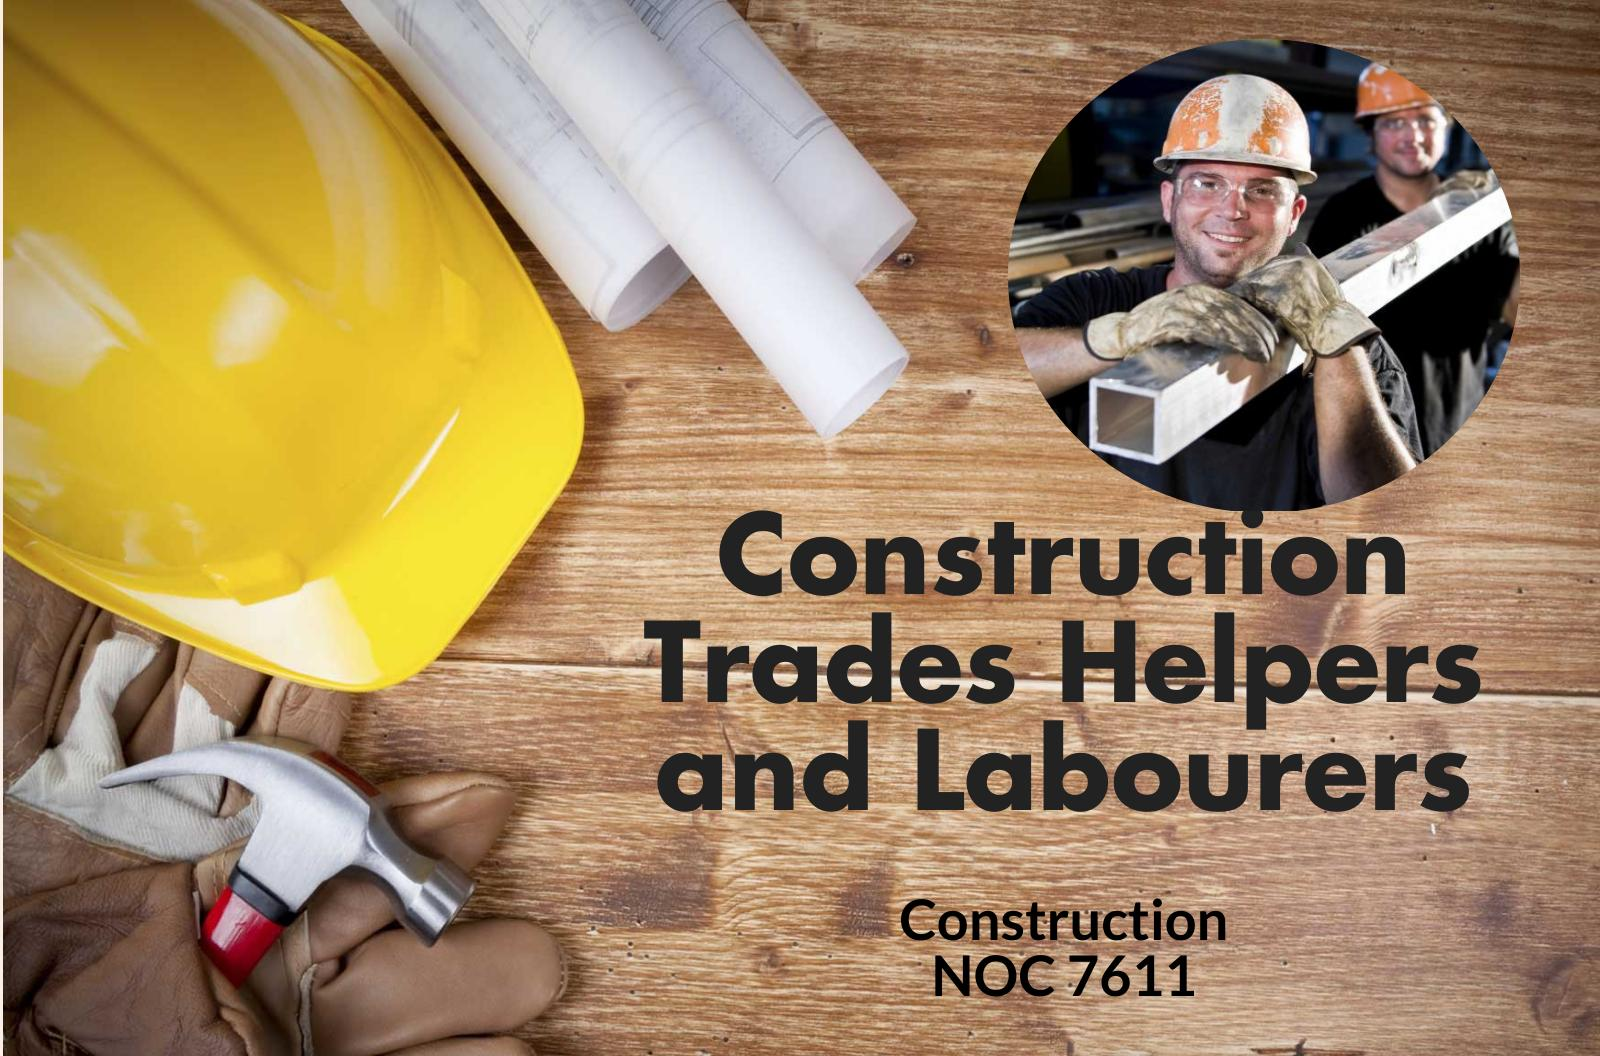 Construction Trades Helpers and Labourers